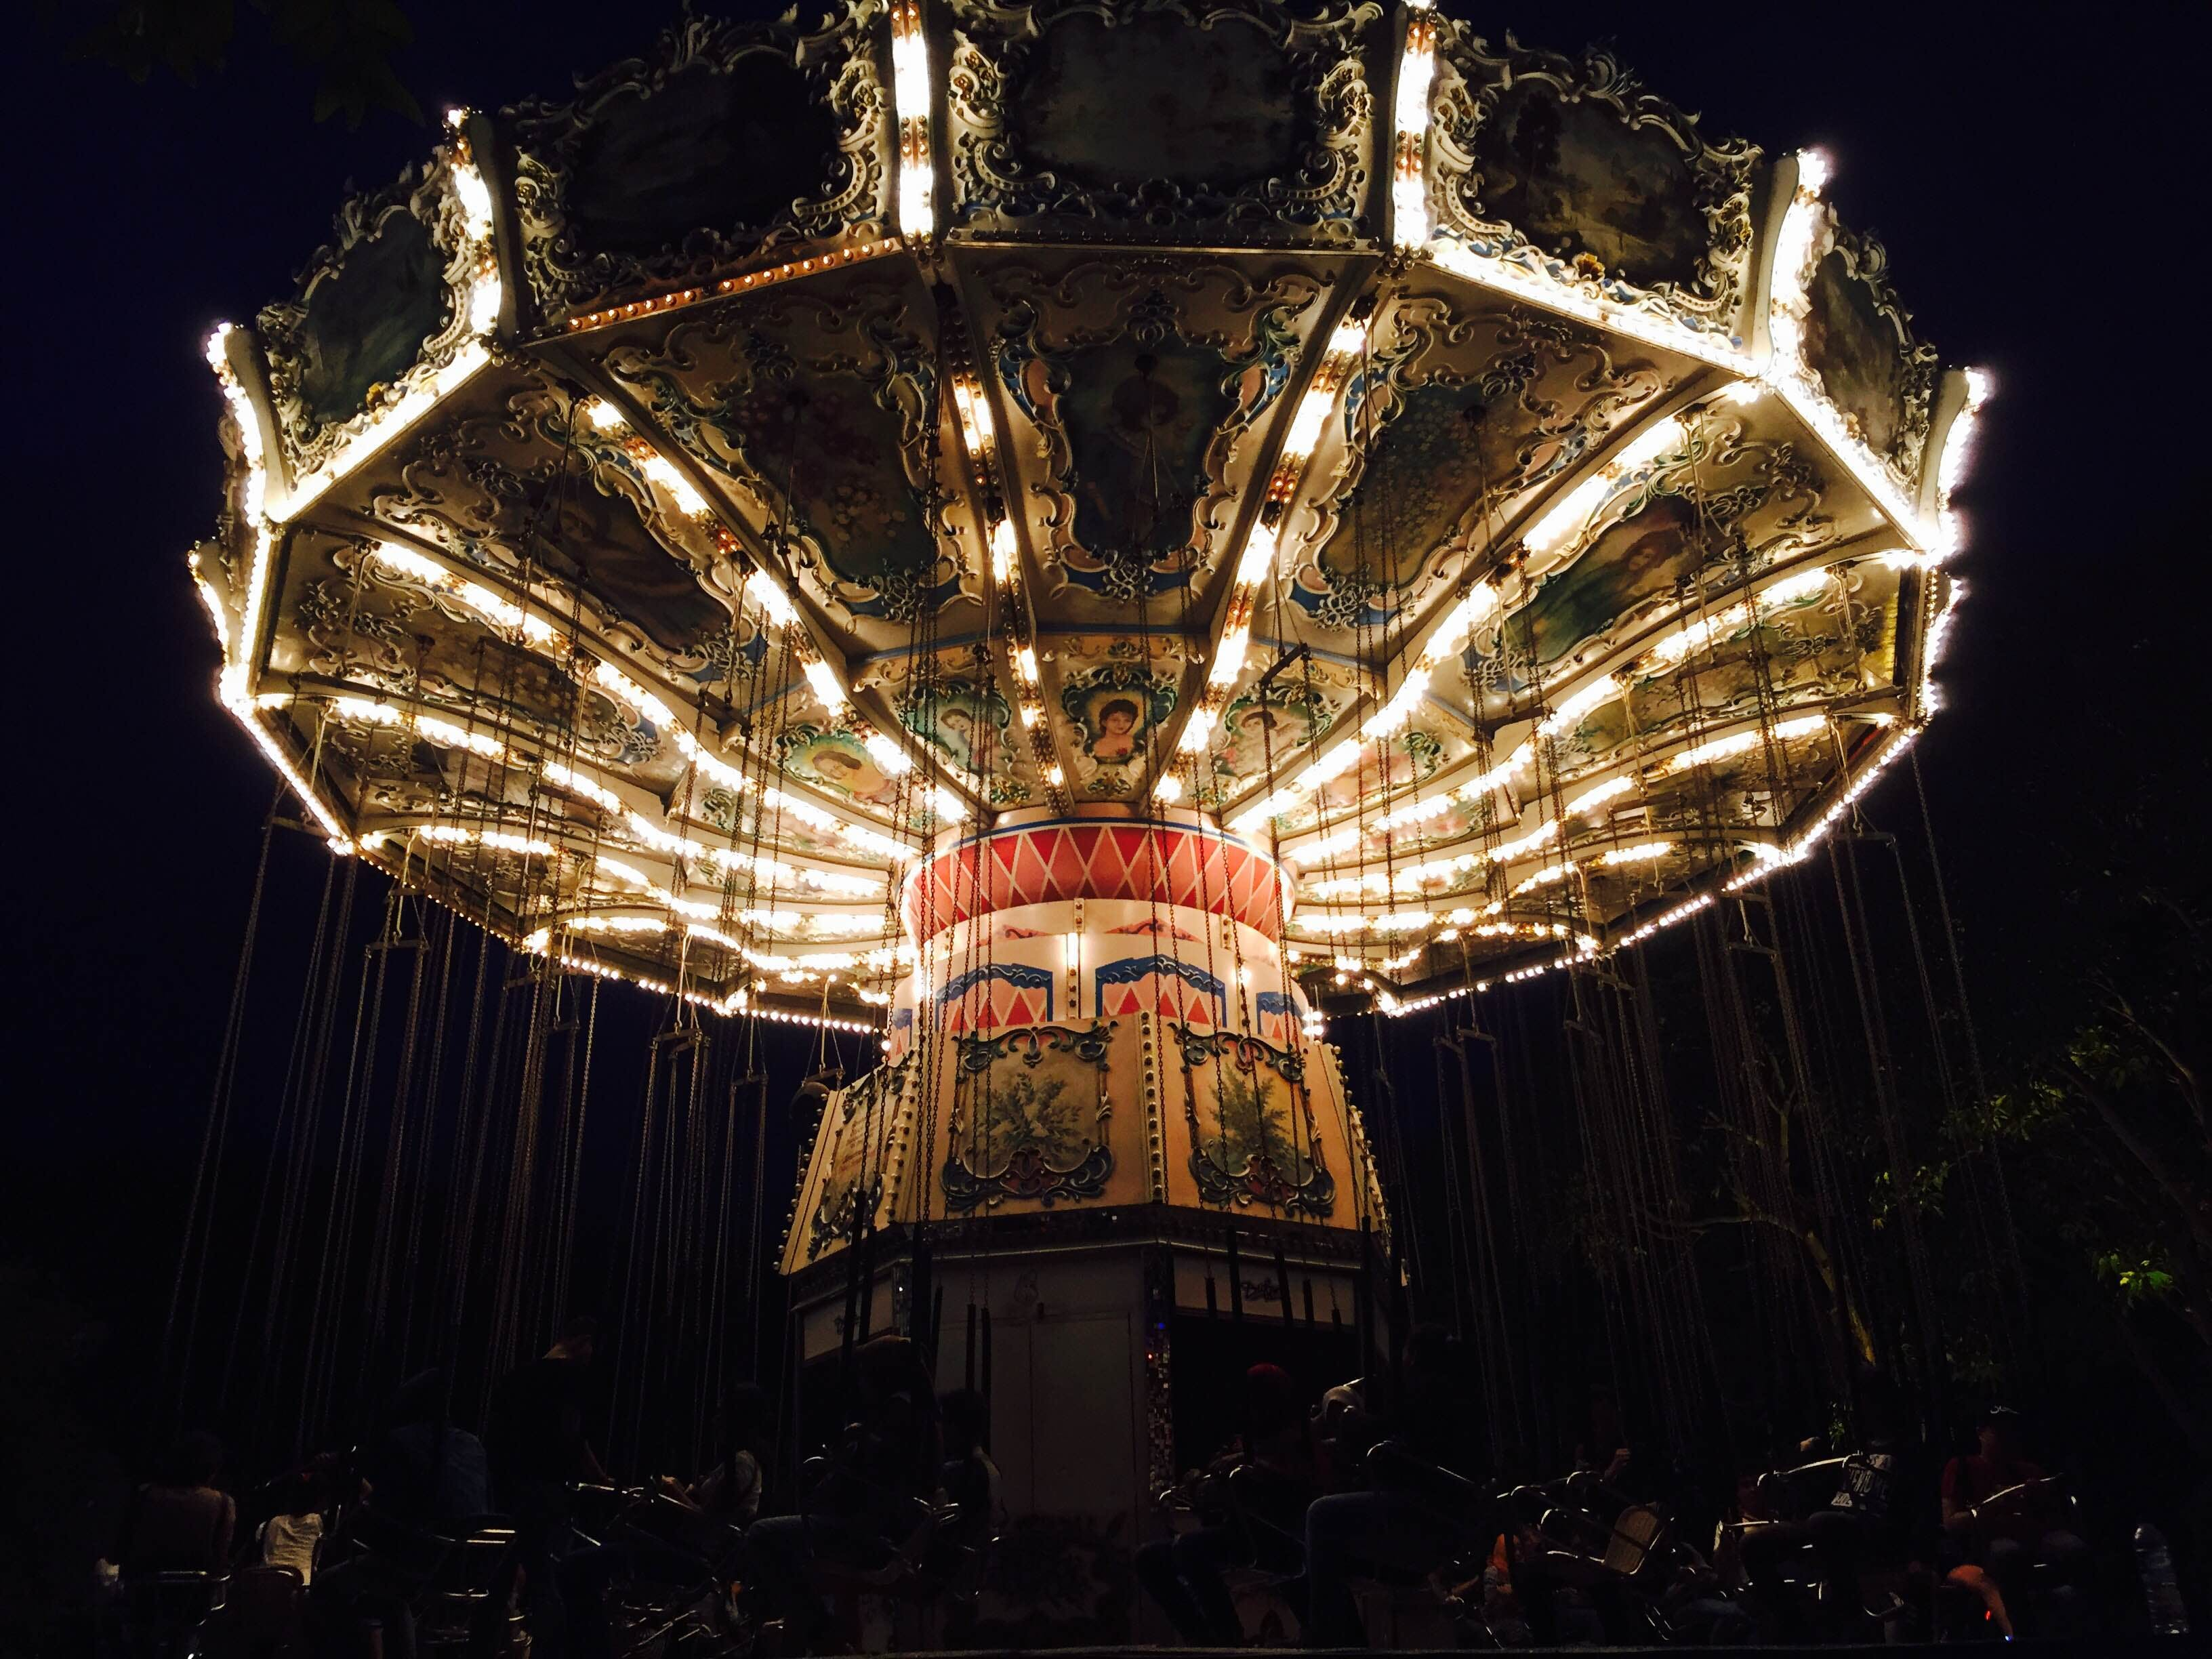 Illuminated Carousel